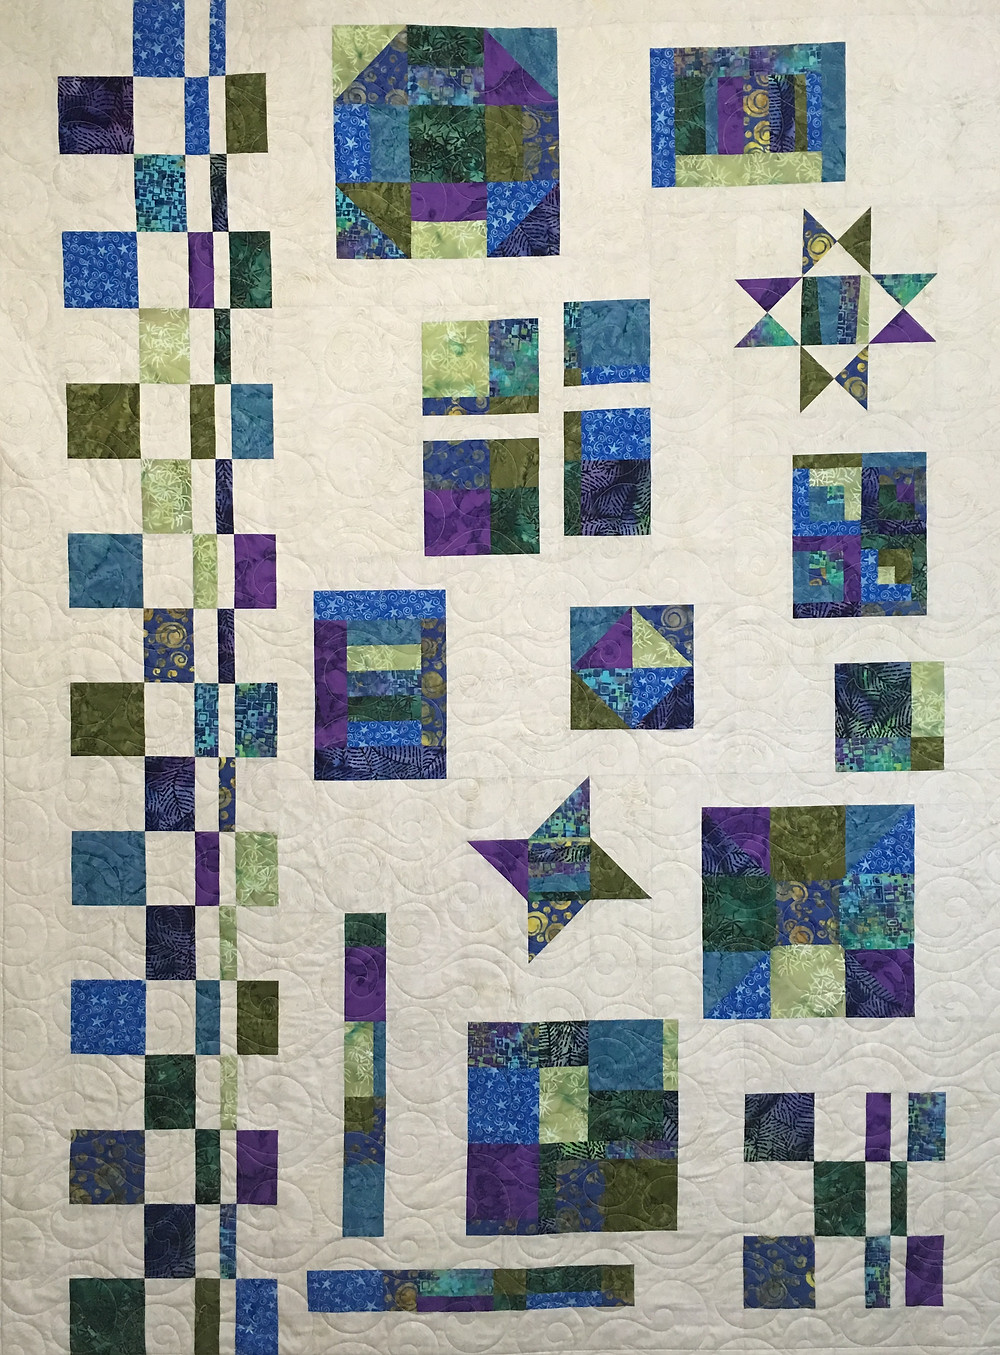 Lynne Gypsy Sampler Quilt in shades of blues and purples